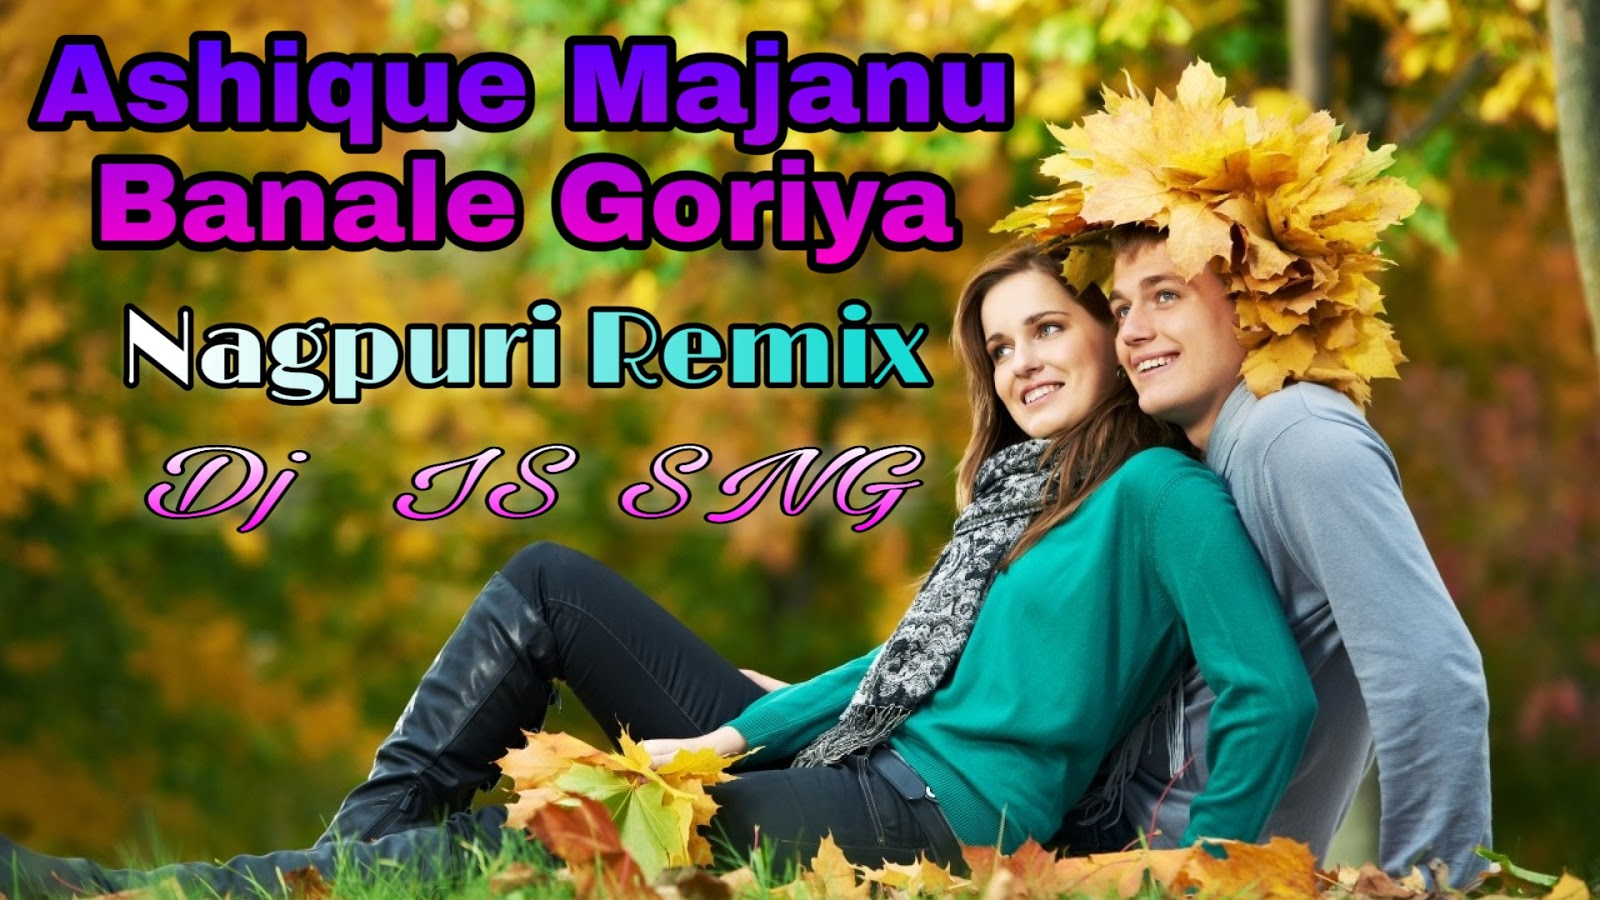 Ashique Majanu Banale Goriya |Nagpuri Remix |Dj IS SNG | New